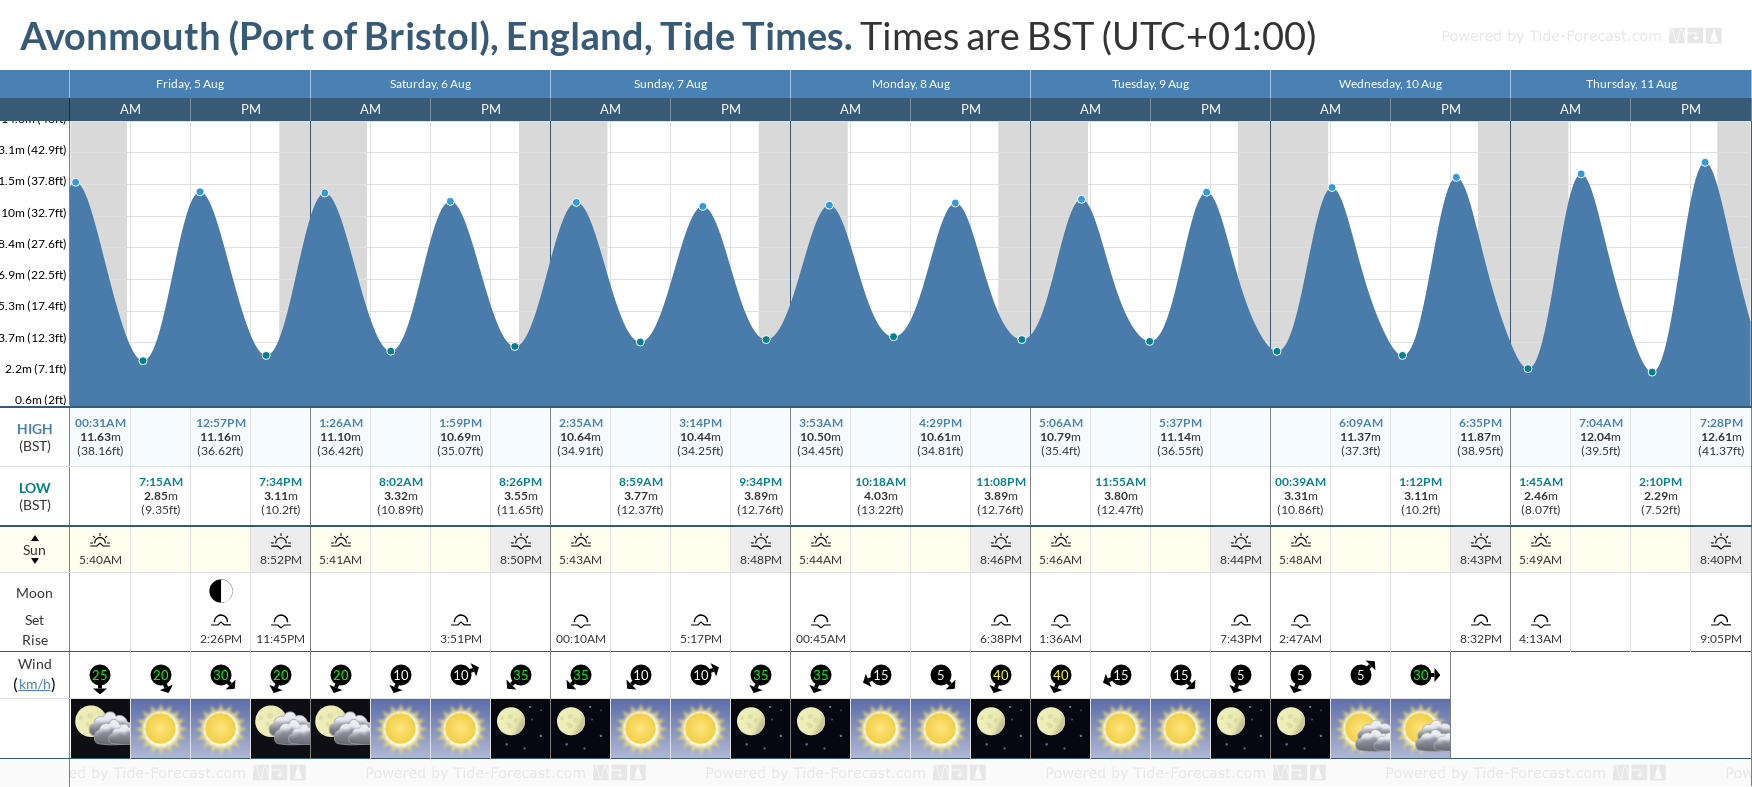 Avonmouth (Port of Bristol), England Tide Chart including high and low tide tide times for the next 7 days